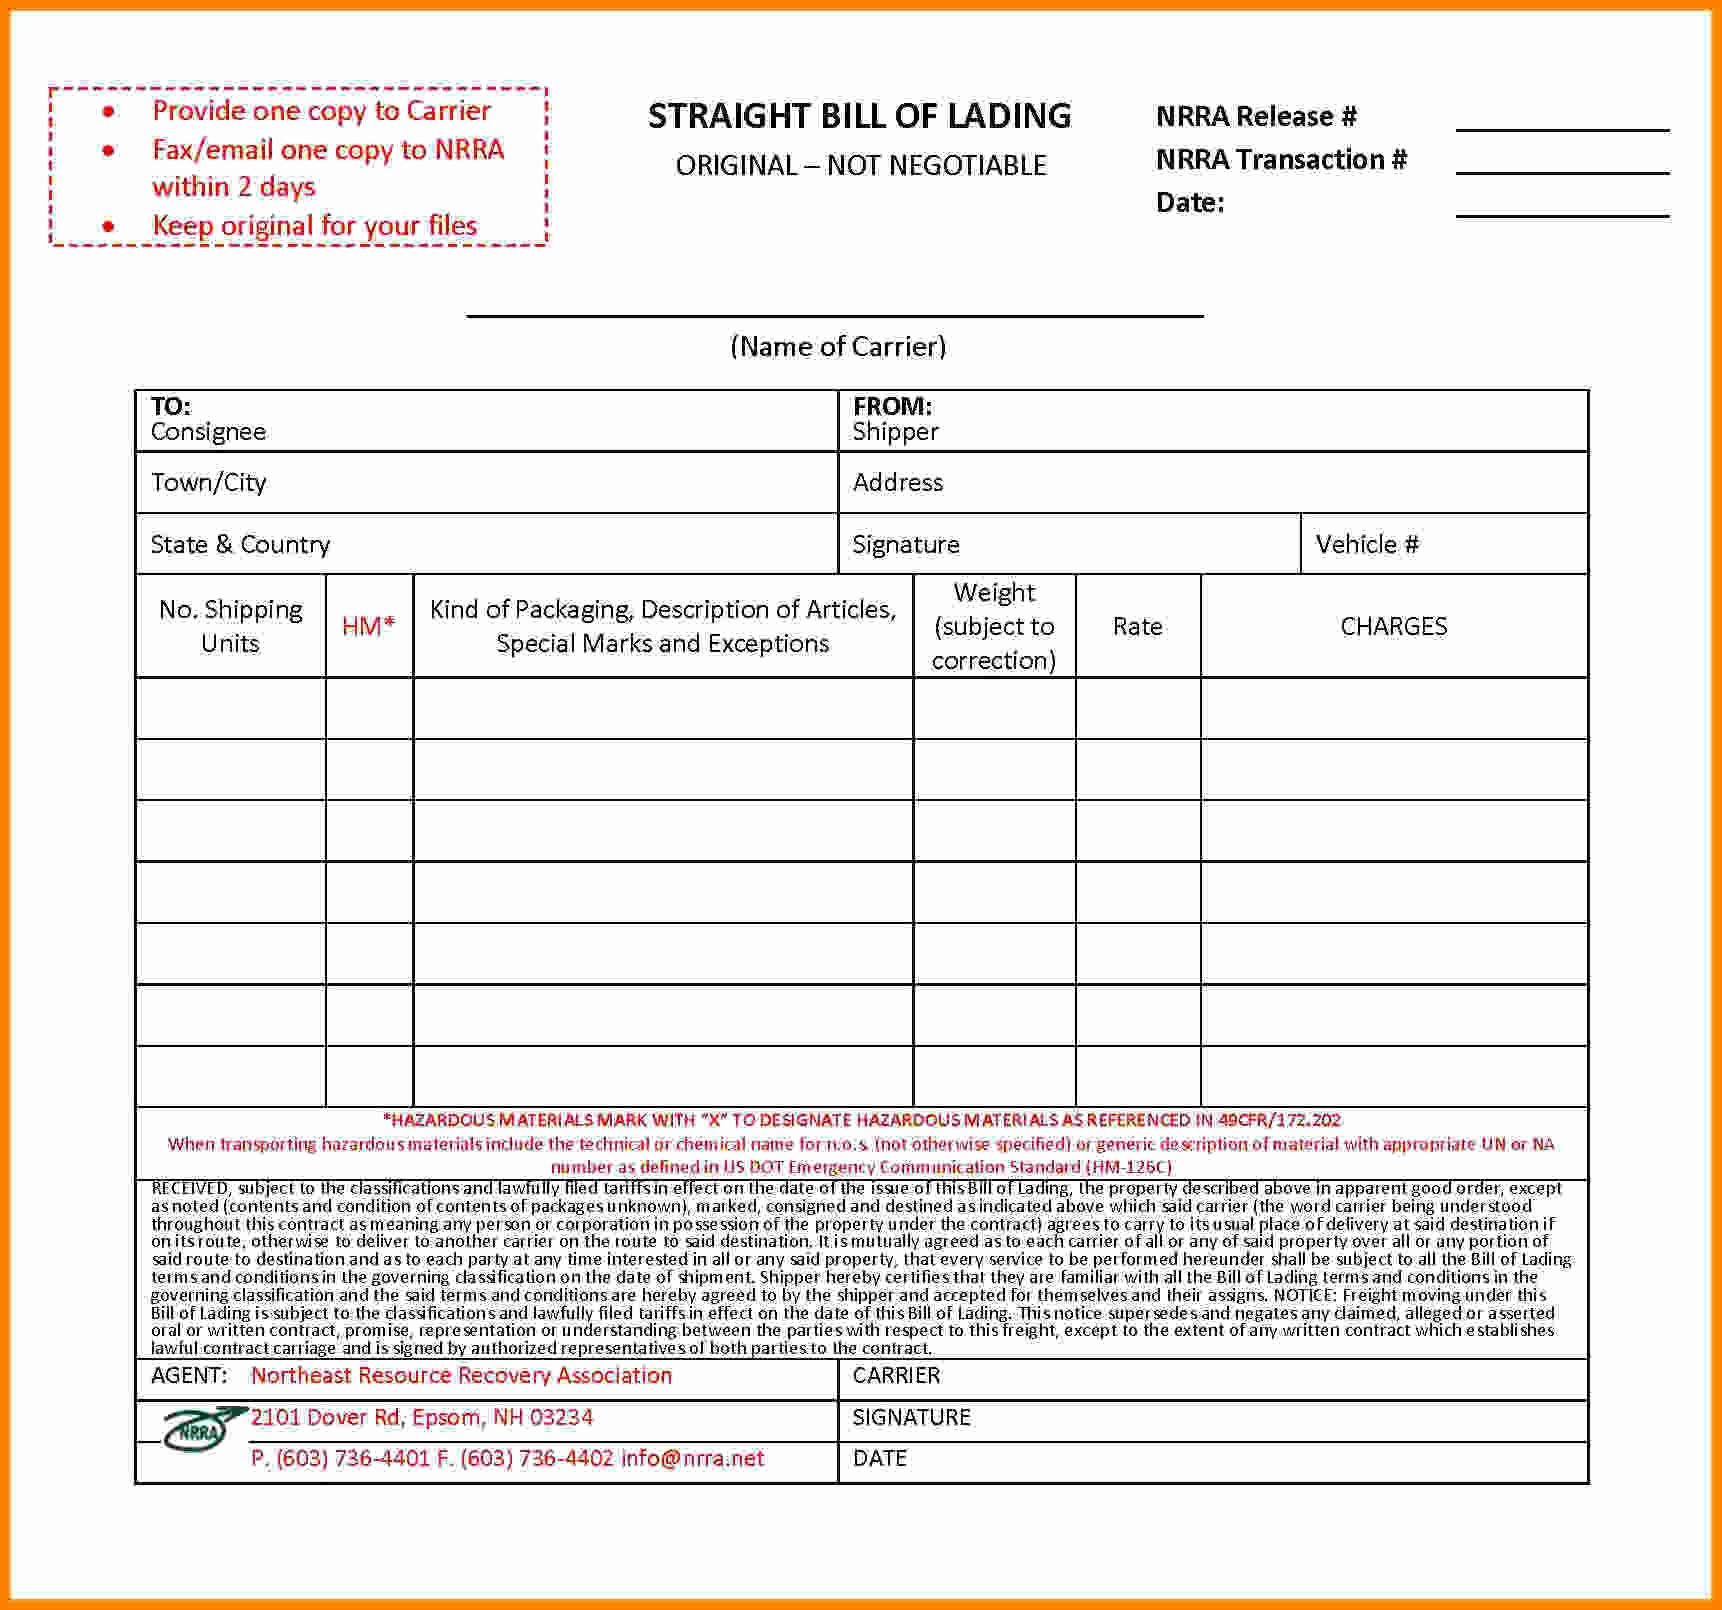 Bill Of Lading Short form Template Beautiful 8 Bill Of Lading Short form Template